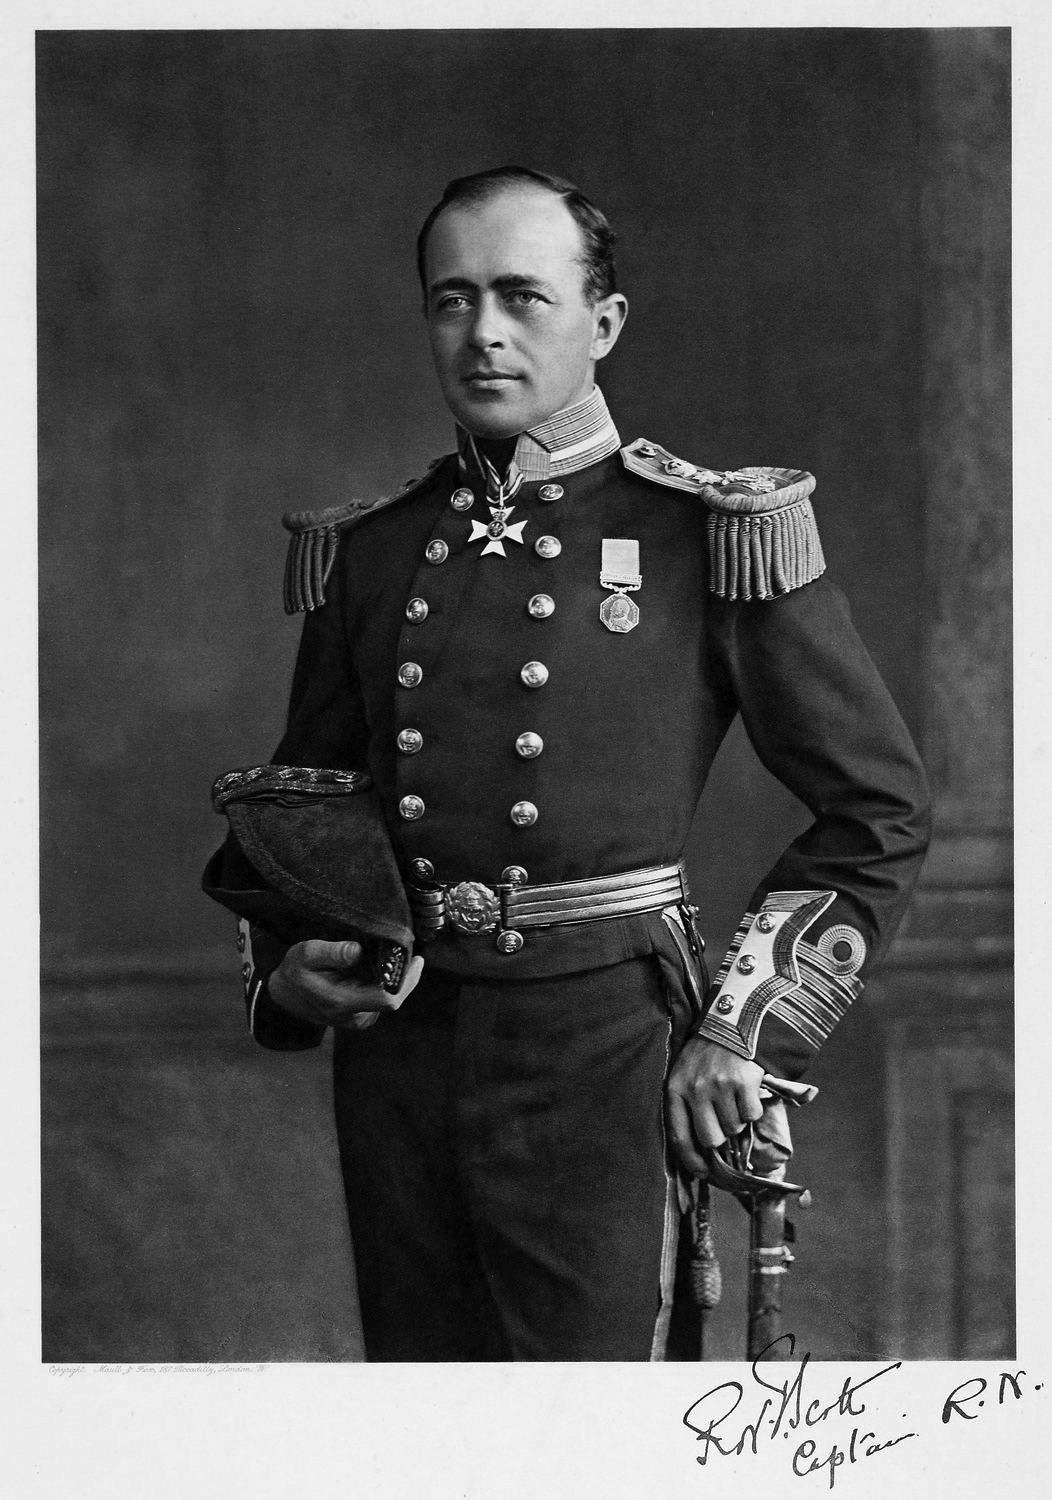 Captain Scott and the Discovery Expedition to Antarctica of 1901-1904